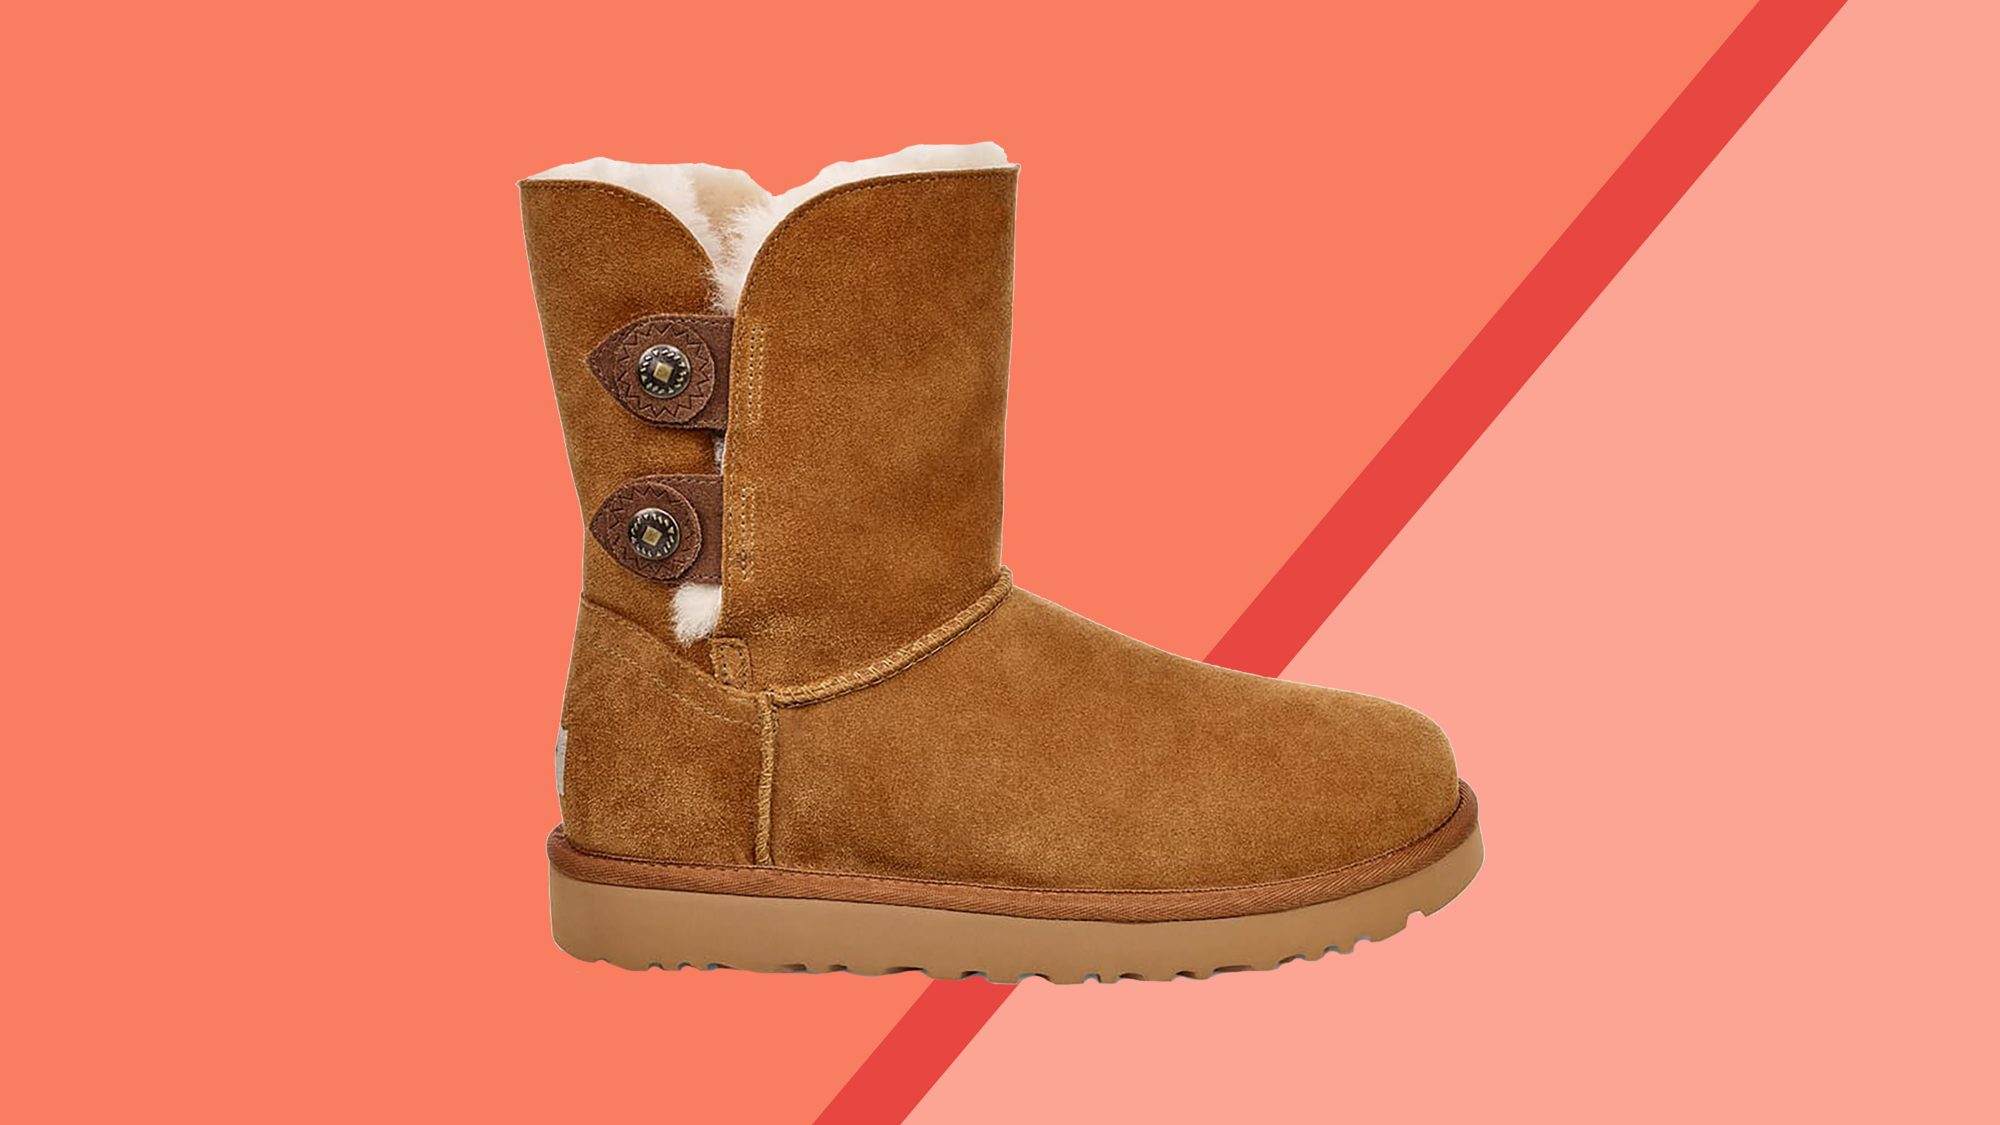 Tout: The Comfiest UGG Boots and Slippers Are Up to 35% Off at Nordstrom Right Now